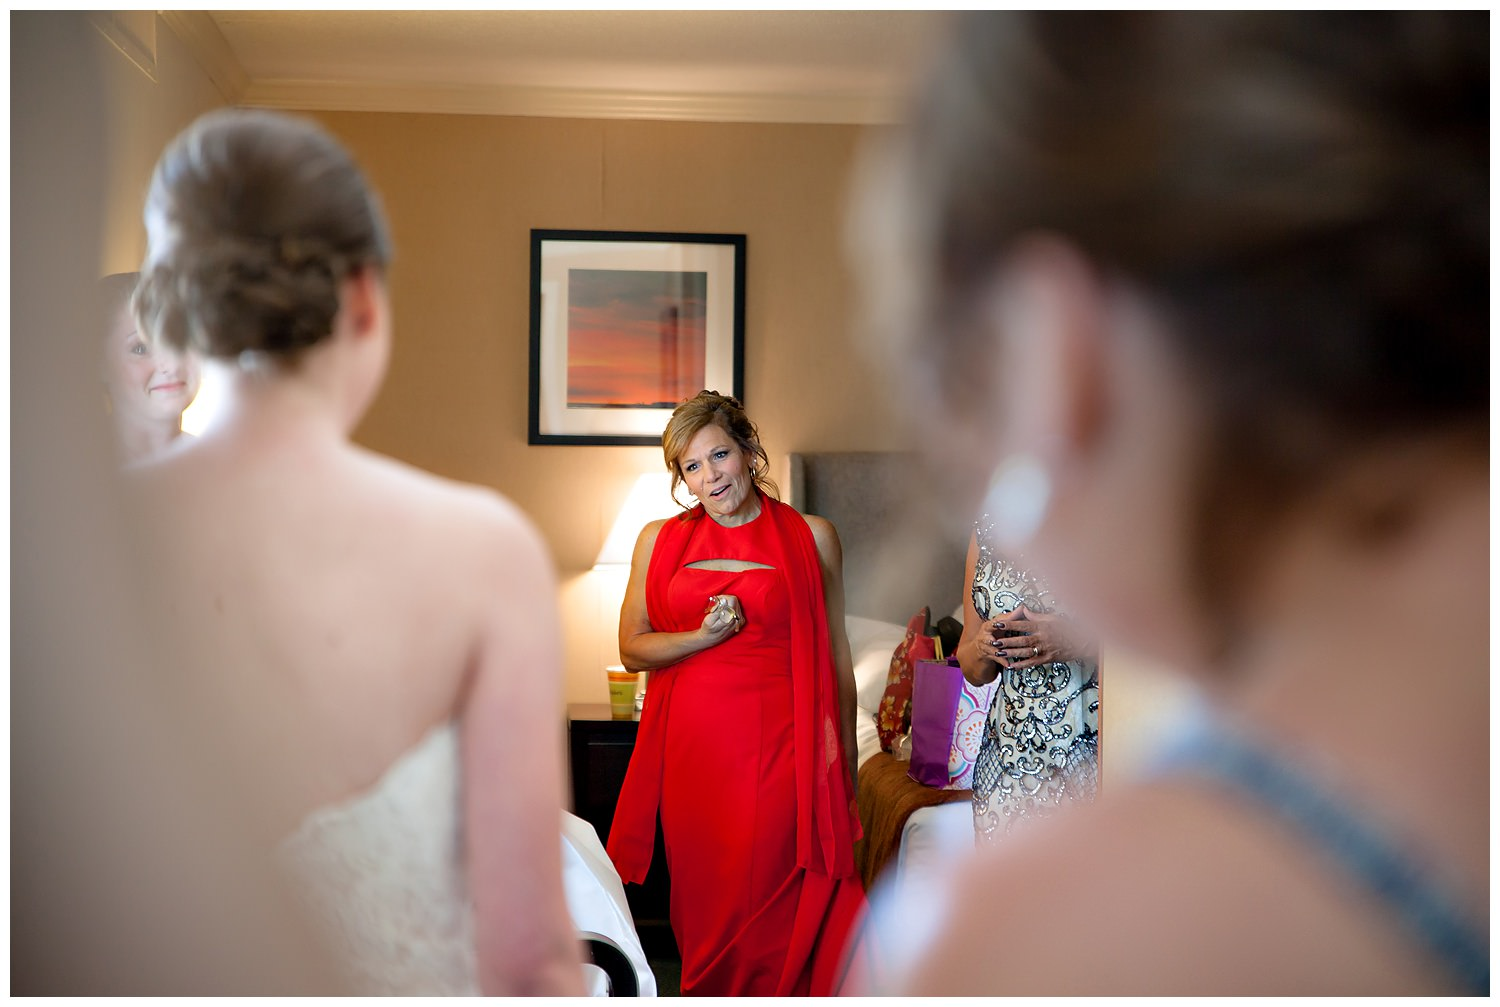 Mom seeing Bride on wedding day